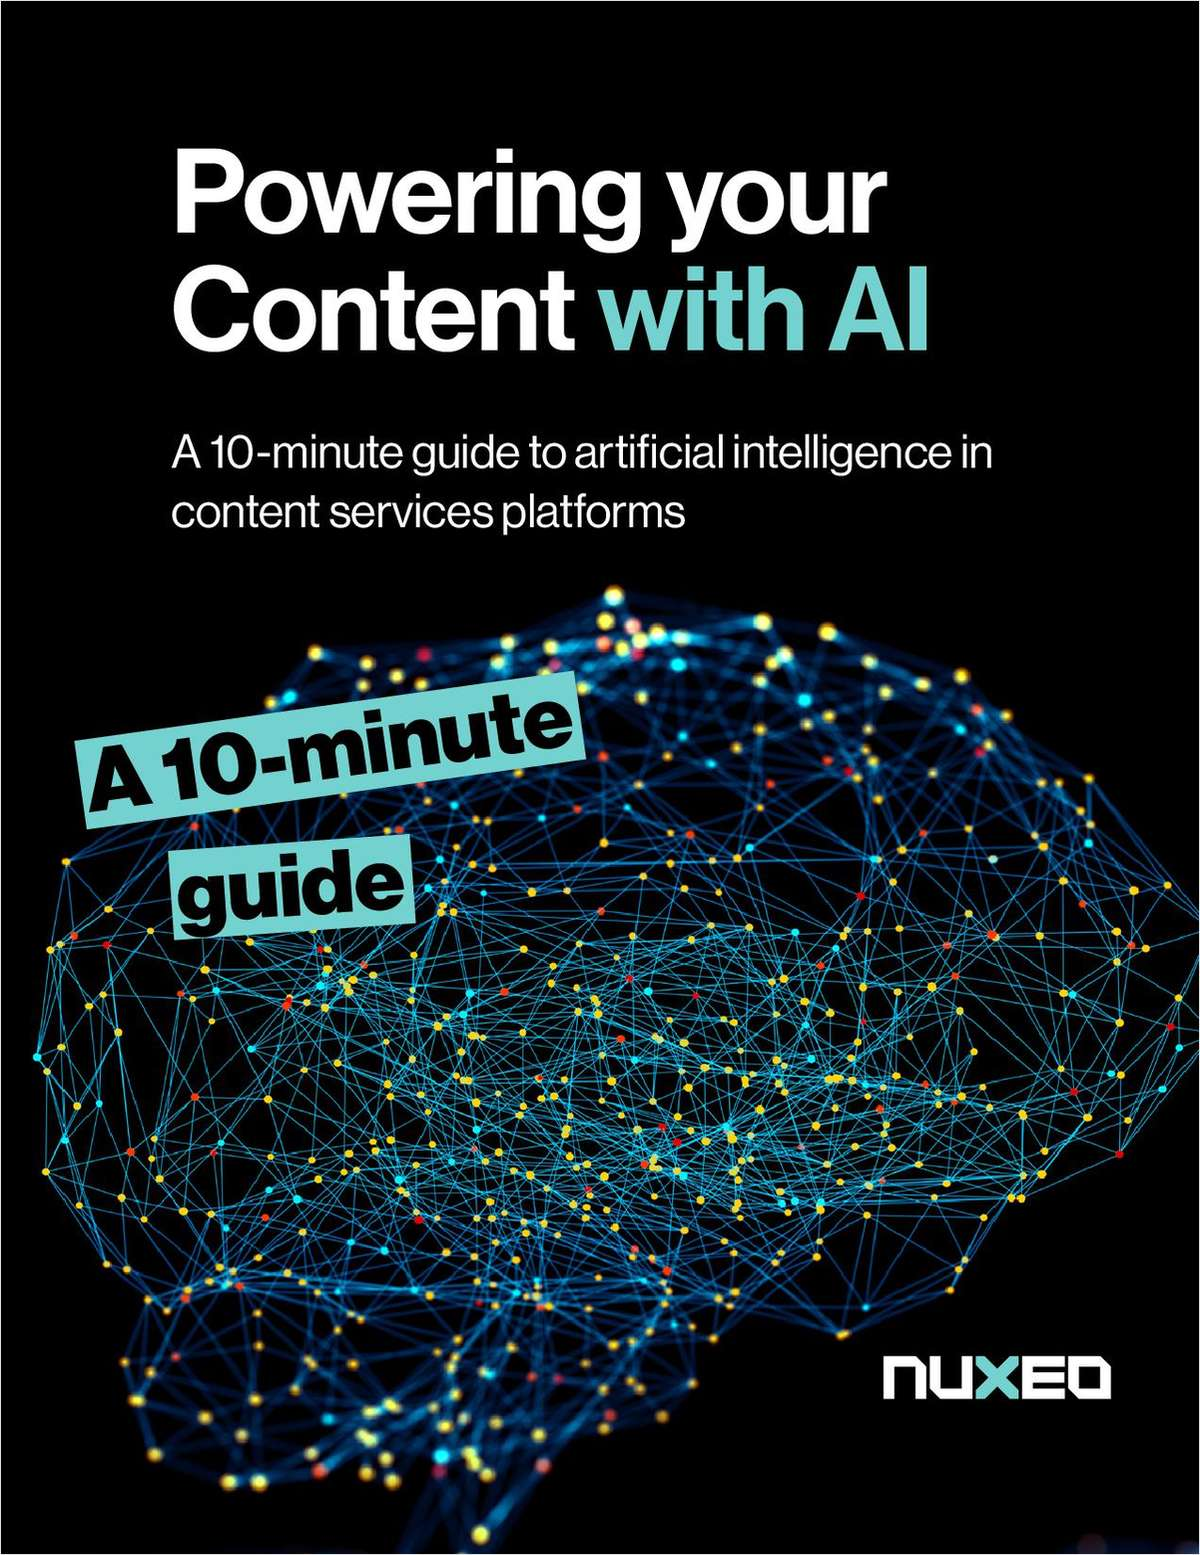 Powering your Content with AI: A 10-minute guide to artificial intelligence in content services platforms